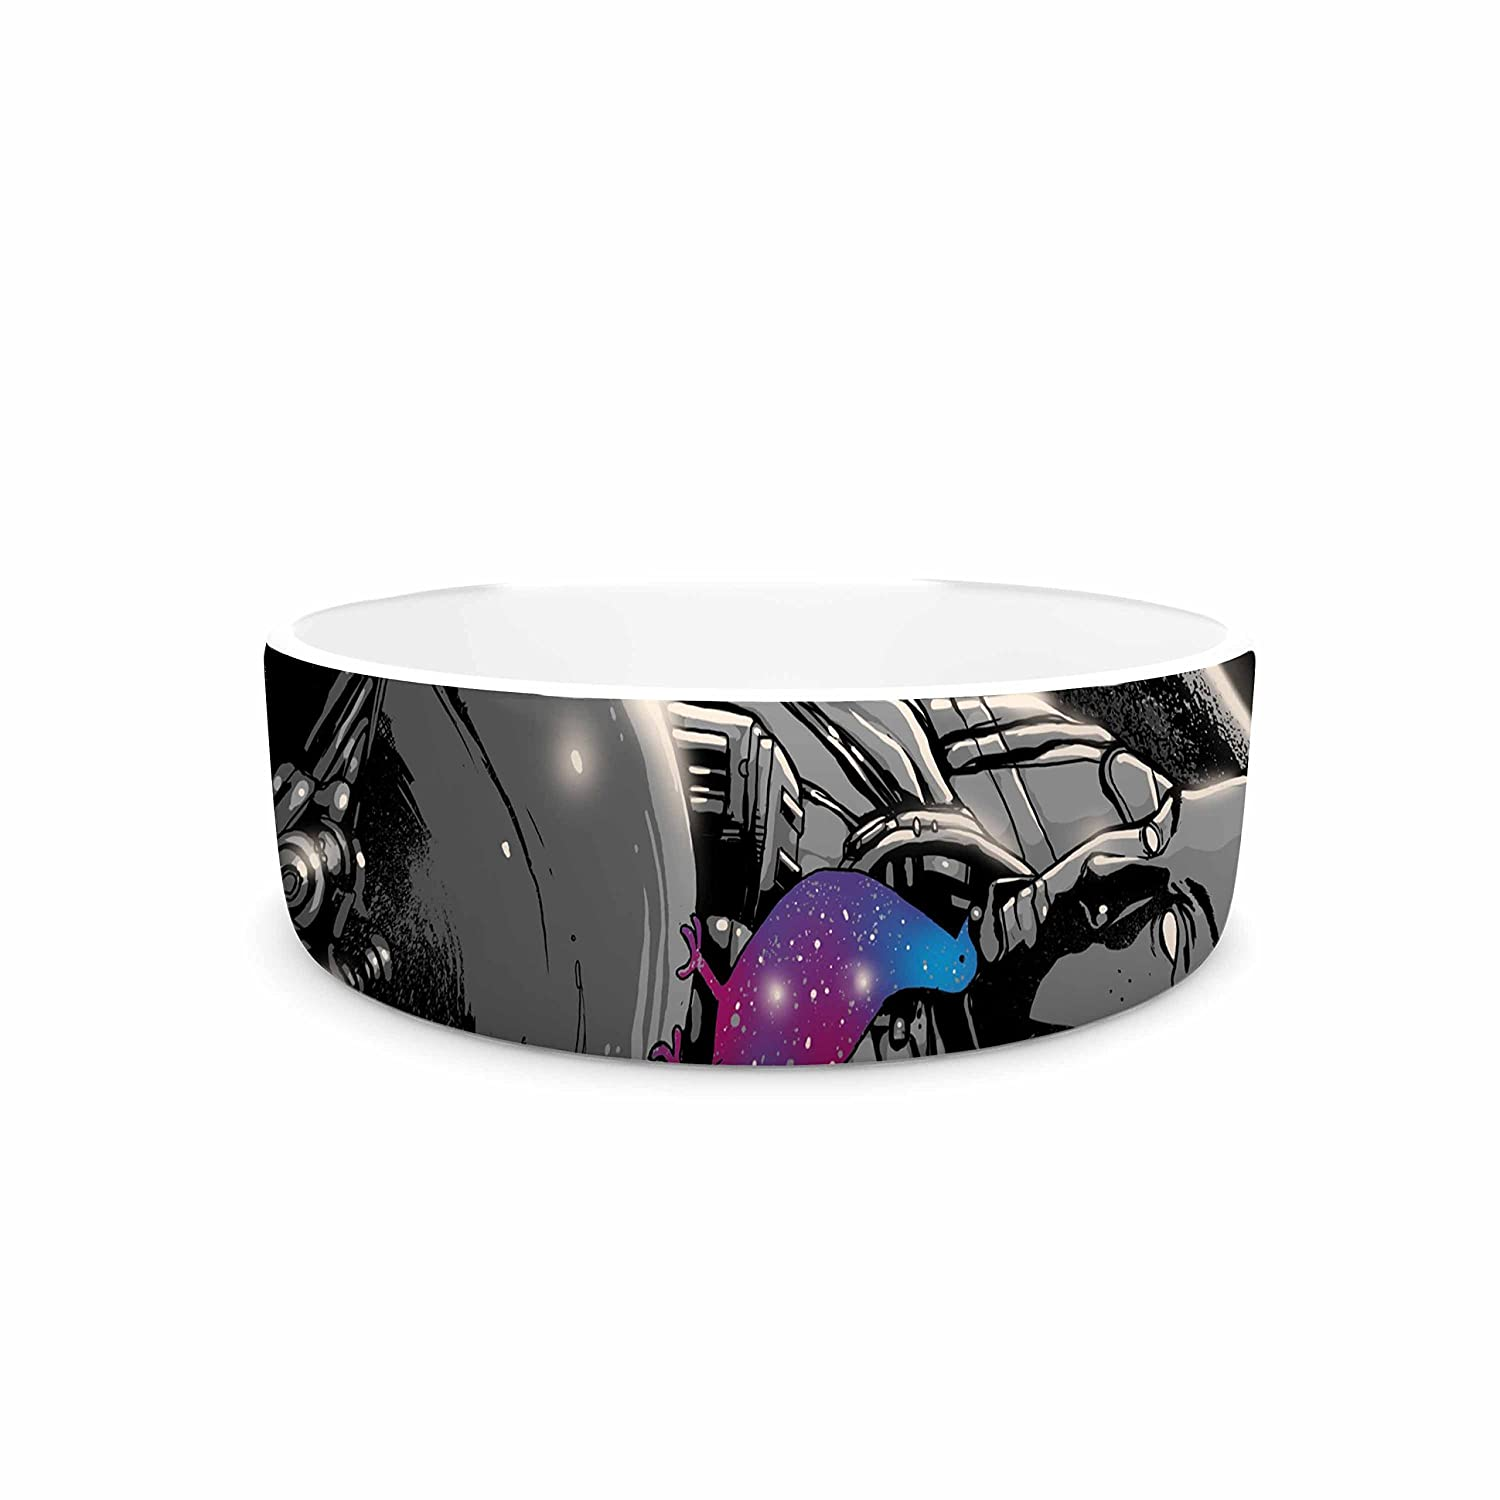 7\ KESS InHouse Digital Carbine a Touch of Whimsy  Black Fantasy Pet Bowl, 7